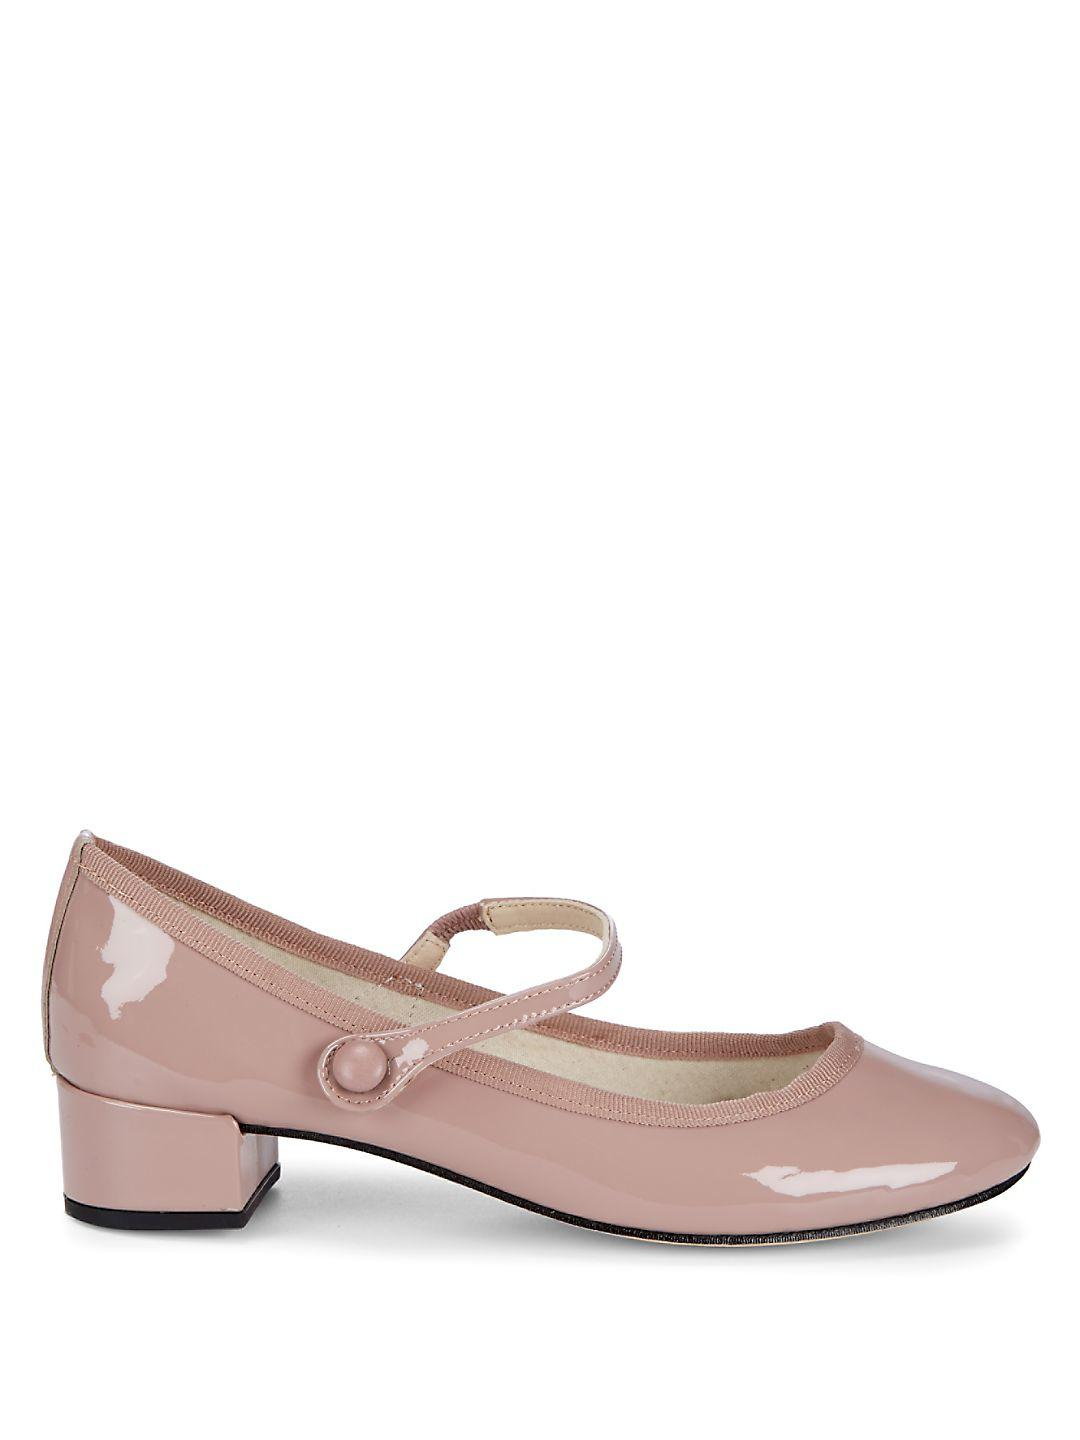 Repetto - Natural Heeled Leather Mary Jane - Lyst. View fullscreen